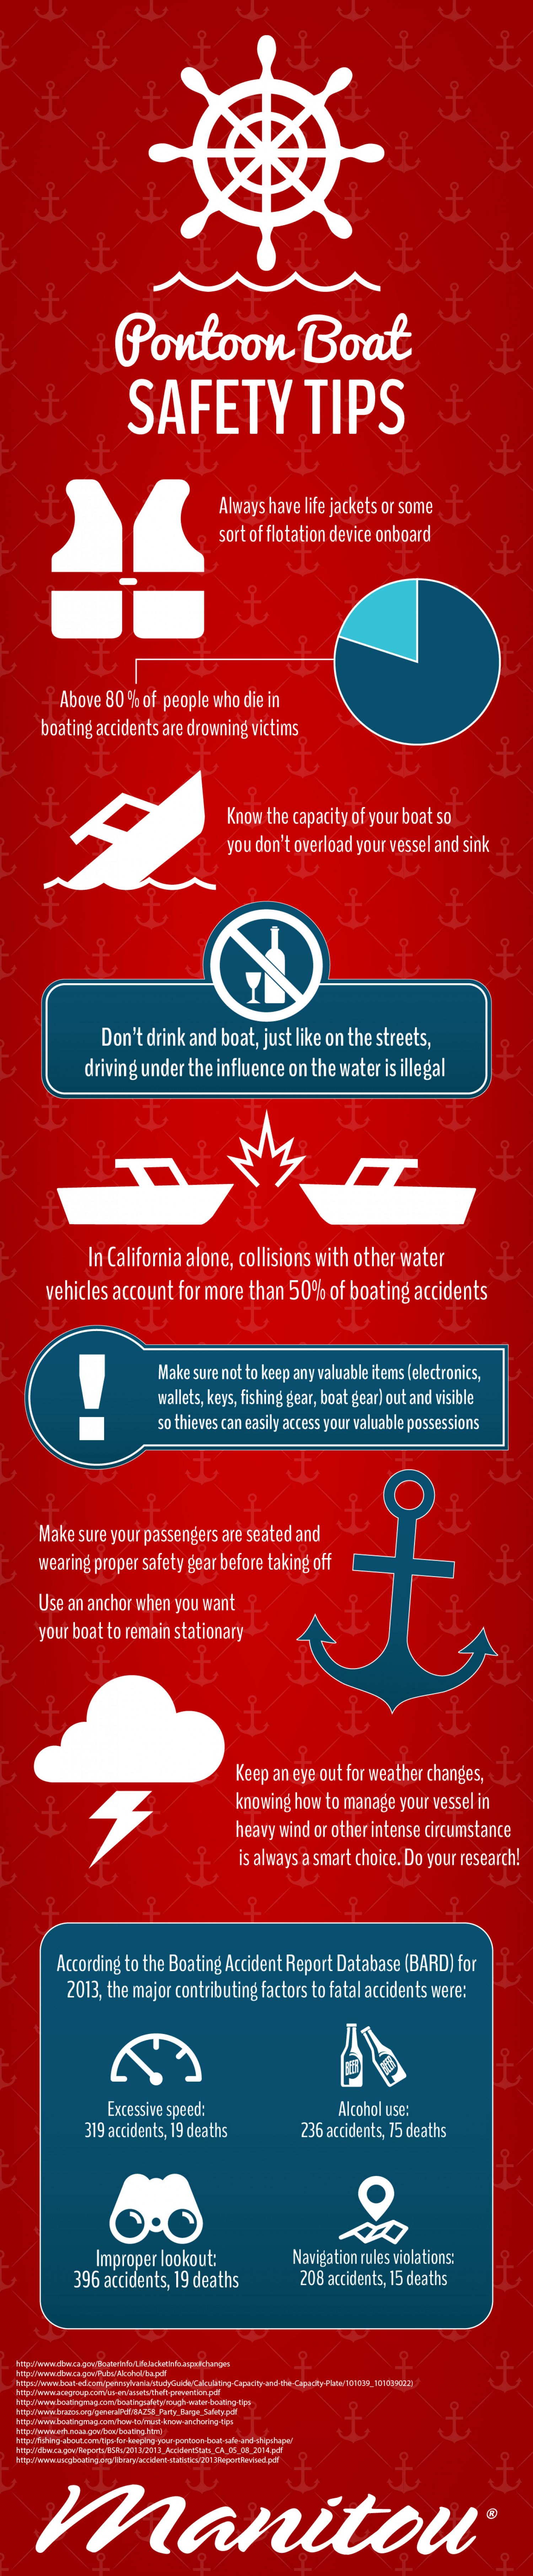 Pontoon Boat Safety Tips Infographic